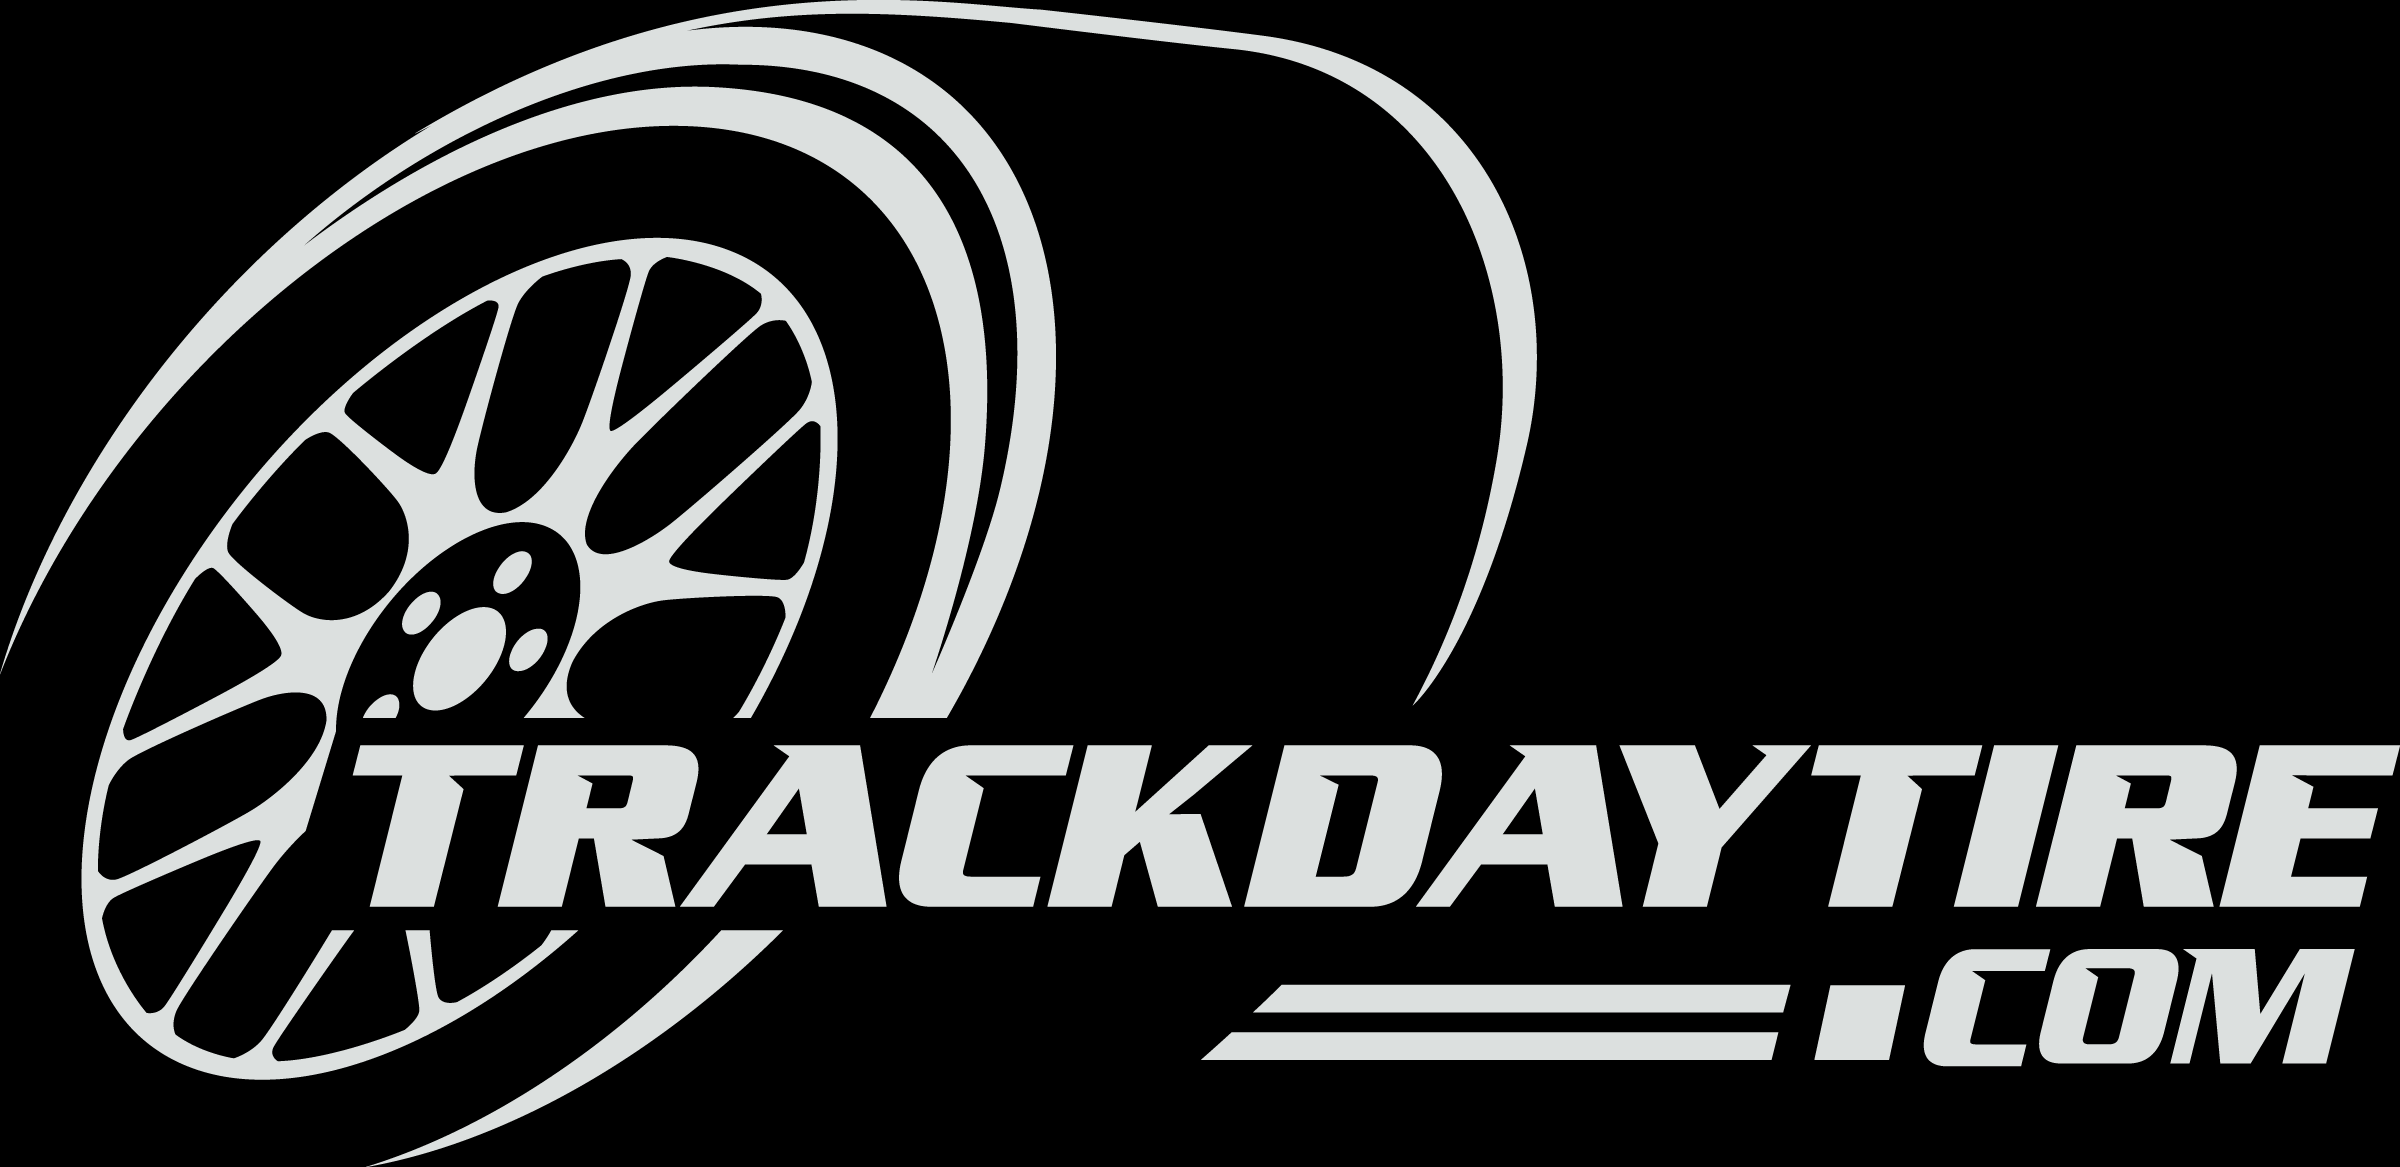 Track Day Tire logo